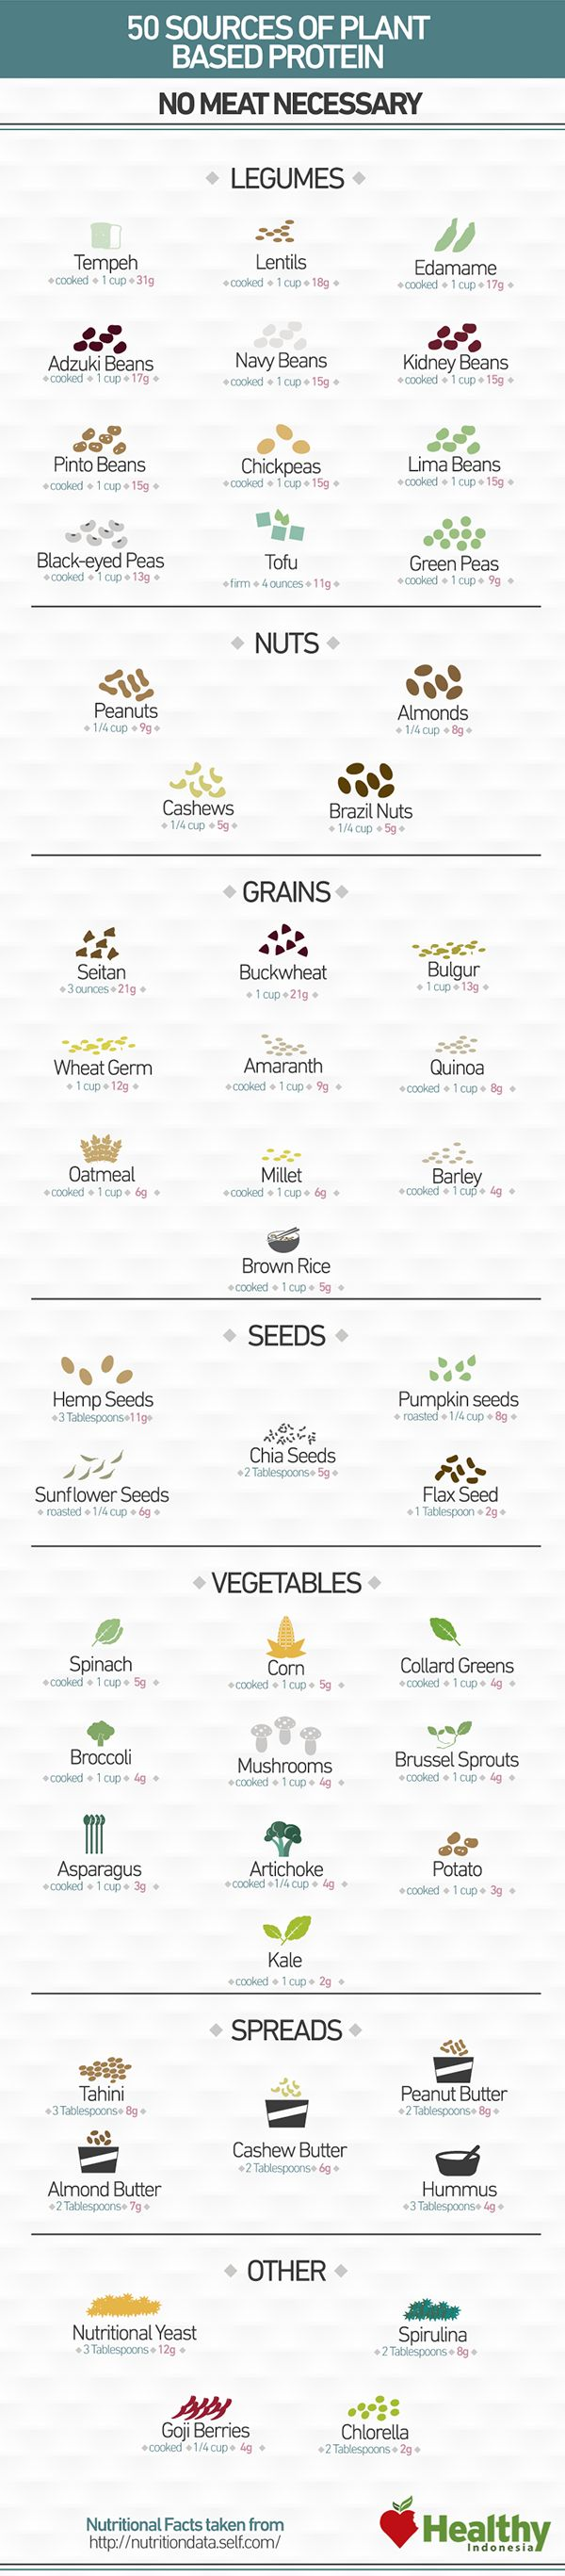 50 Sources of Plant Based Protein (NO Meat Necessary)